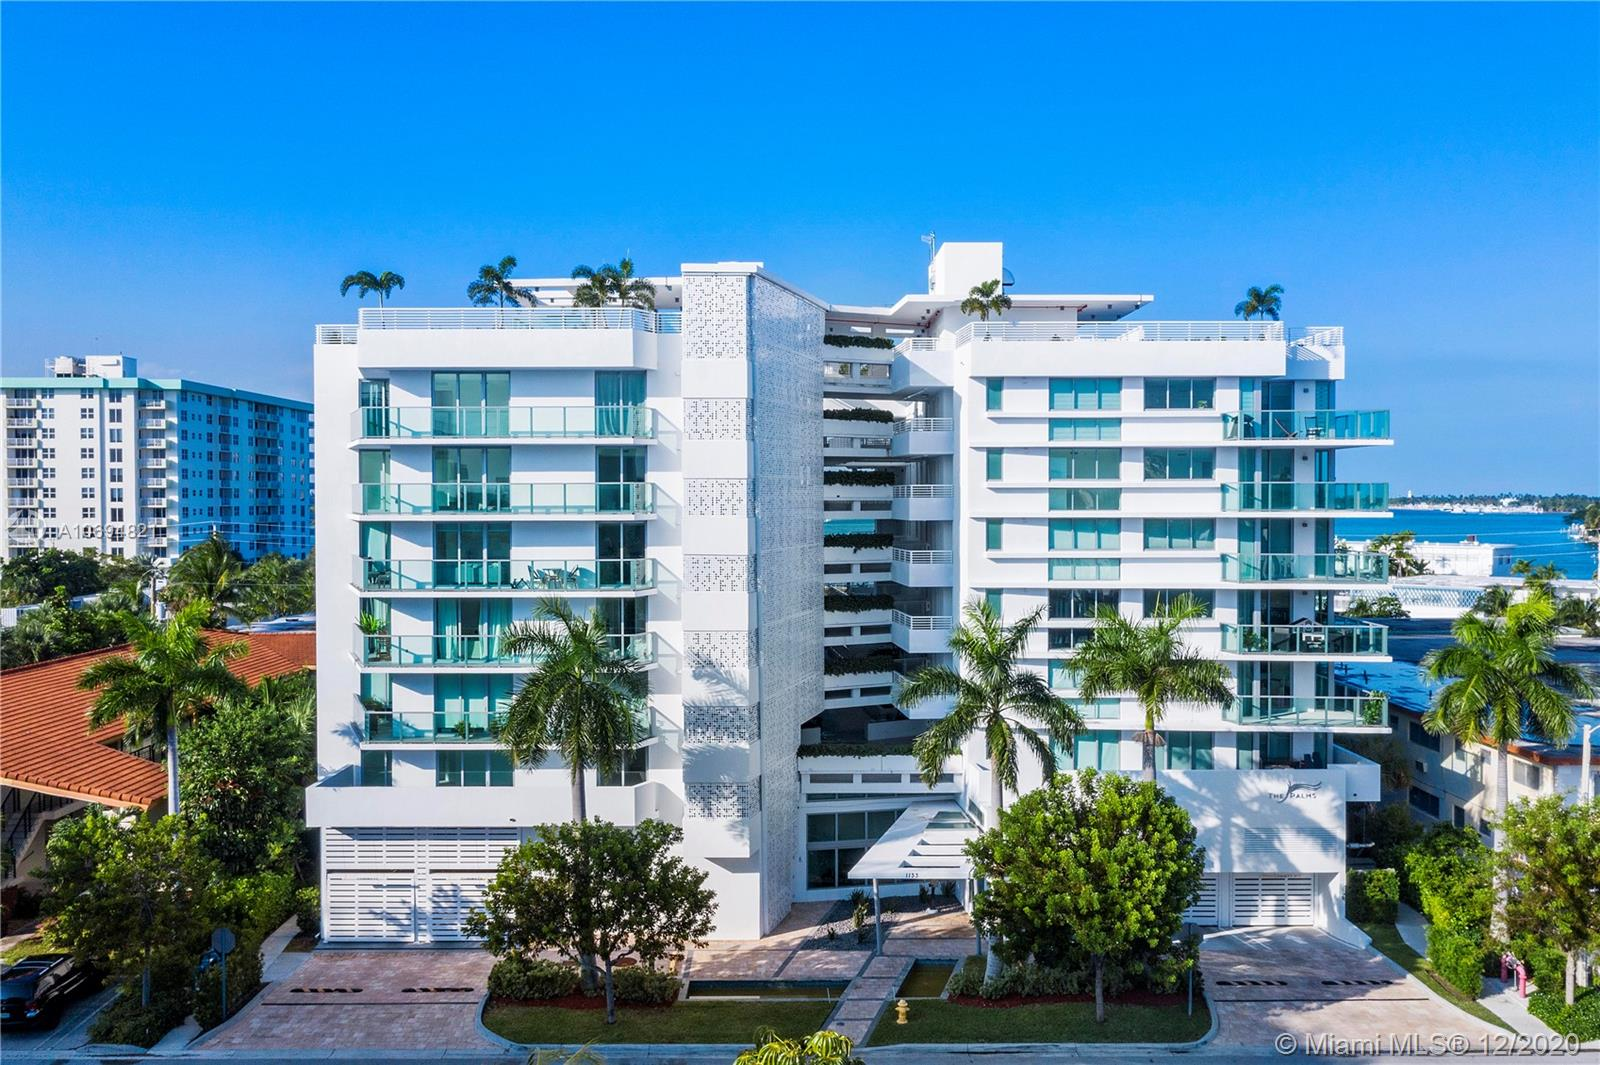 Brand new boutique style building in Bay Harbor Islands. Unit has 2 bedrooms and 2 bathrooms. Offers stainless steel appliances, tile throughout, washer and dryer inside, impact windows and wine cooler. Gorgeous views from the rooftop infinity pool and hot tub. Unit comes with 2 parking spaces (#28, #29) as well as a storage unit. Walking distance to shopping, places of worship, and A+ Bay Harbor K-8 Education Center. Great for investment opportunity. Presently rented at $2,750 until 1-2-21